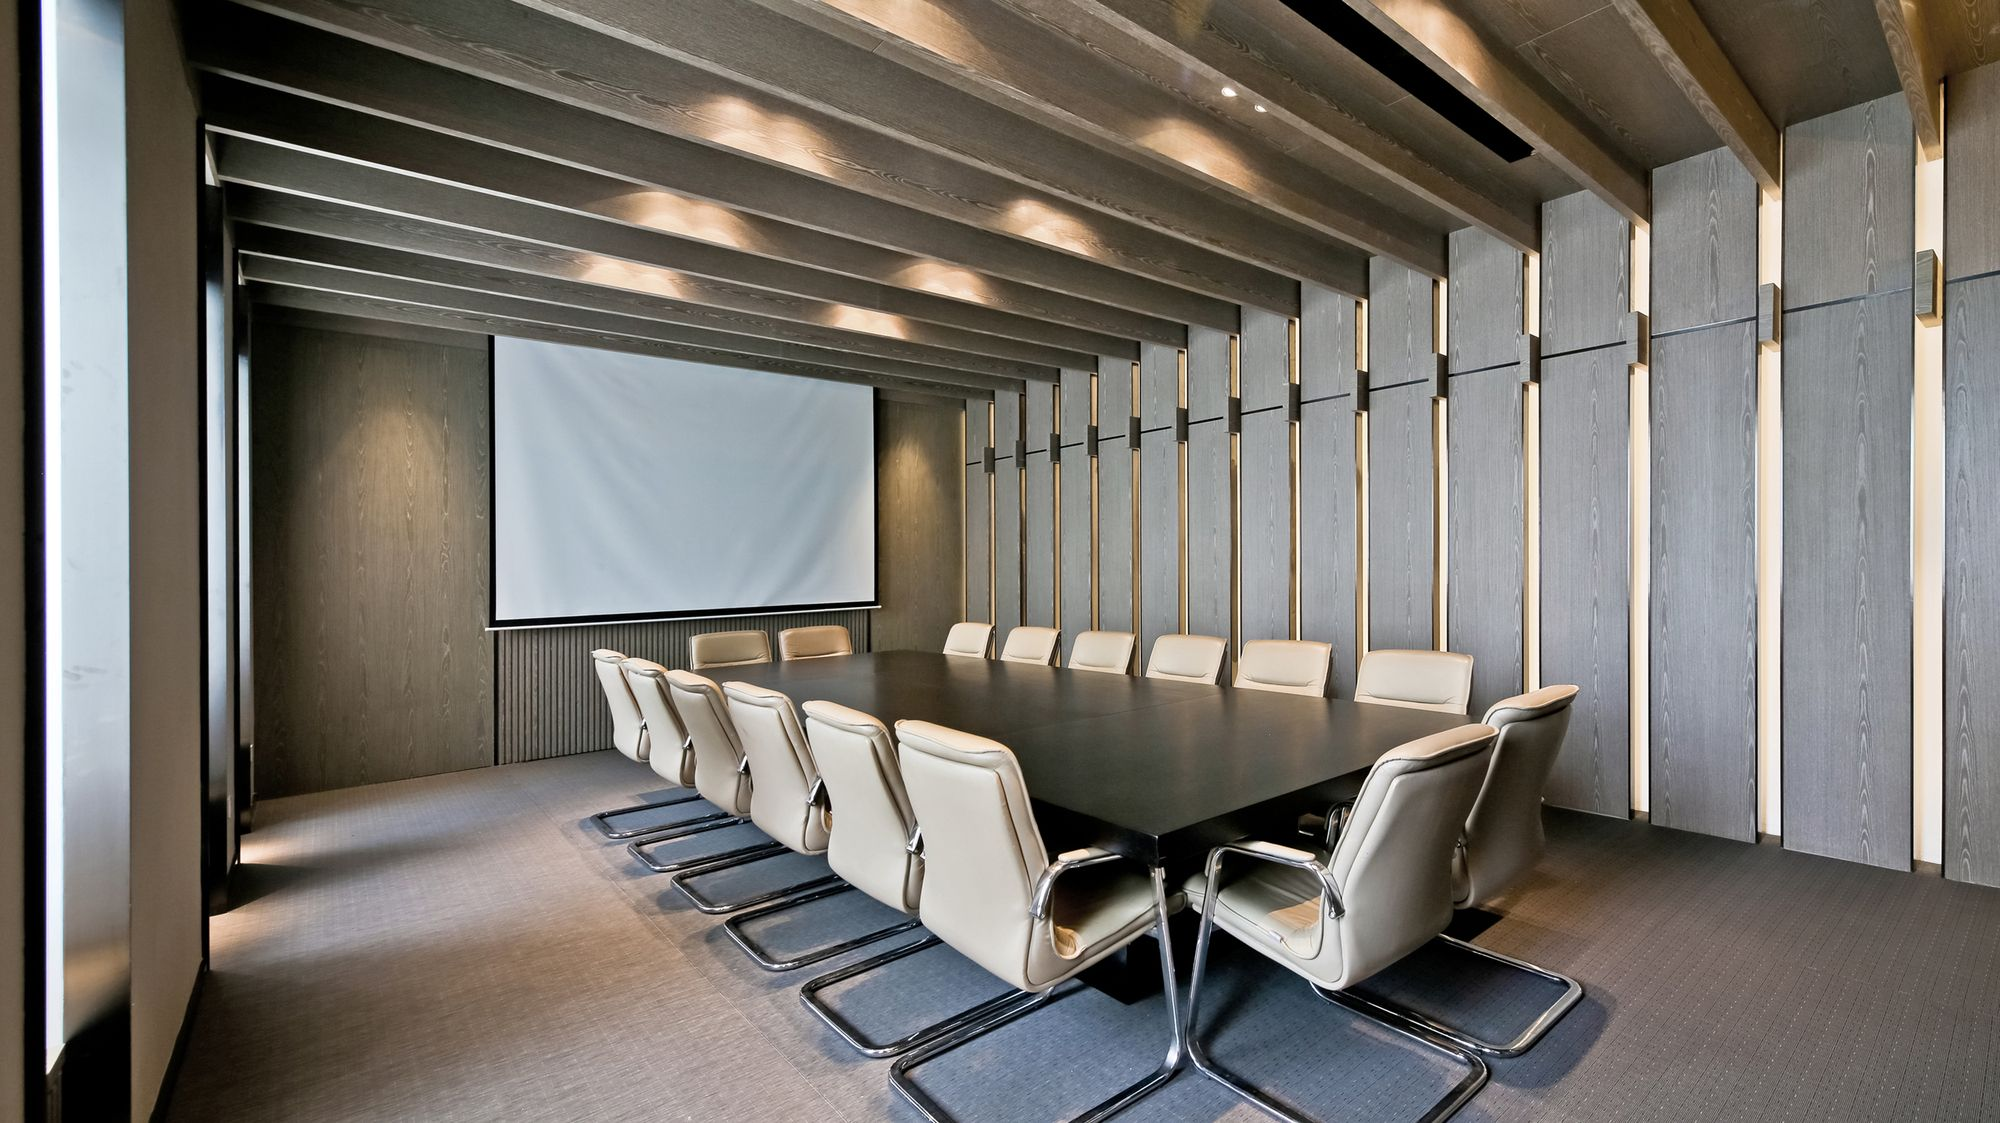 burwell deakins projects loughborough design school lecture theatre for collaborative lectures Learning Space Pinterest